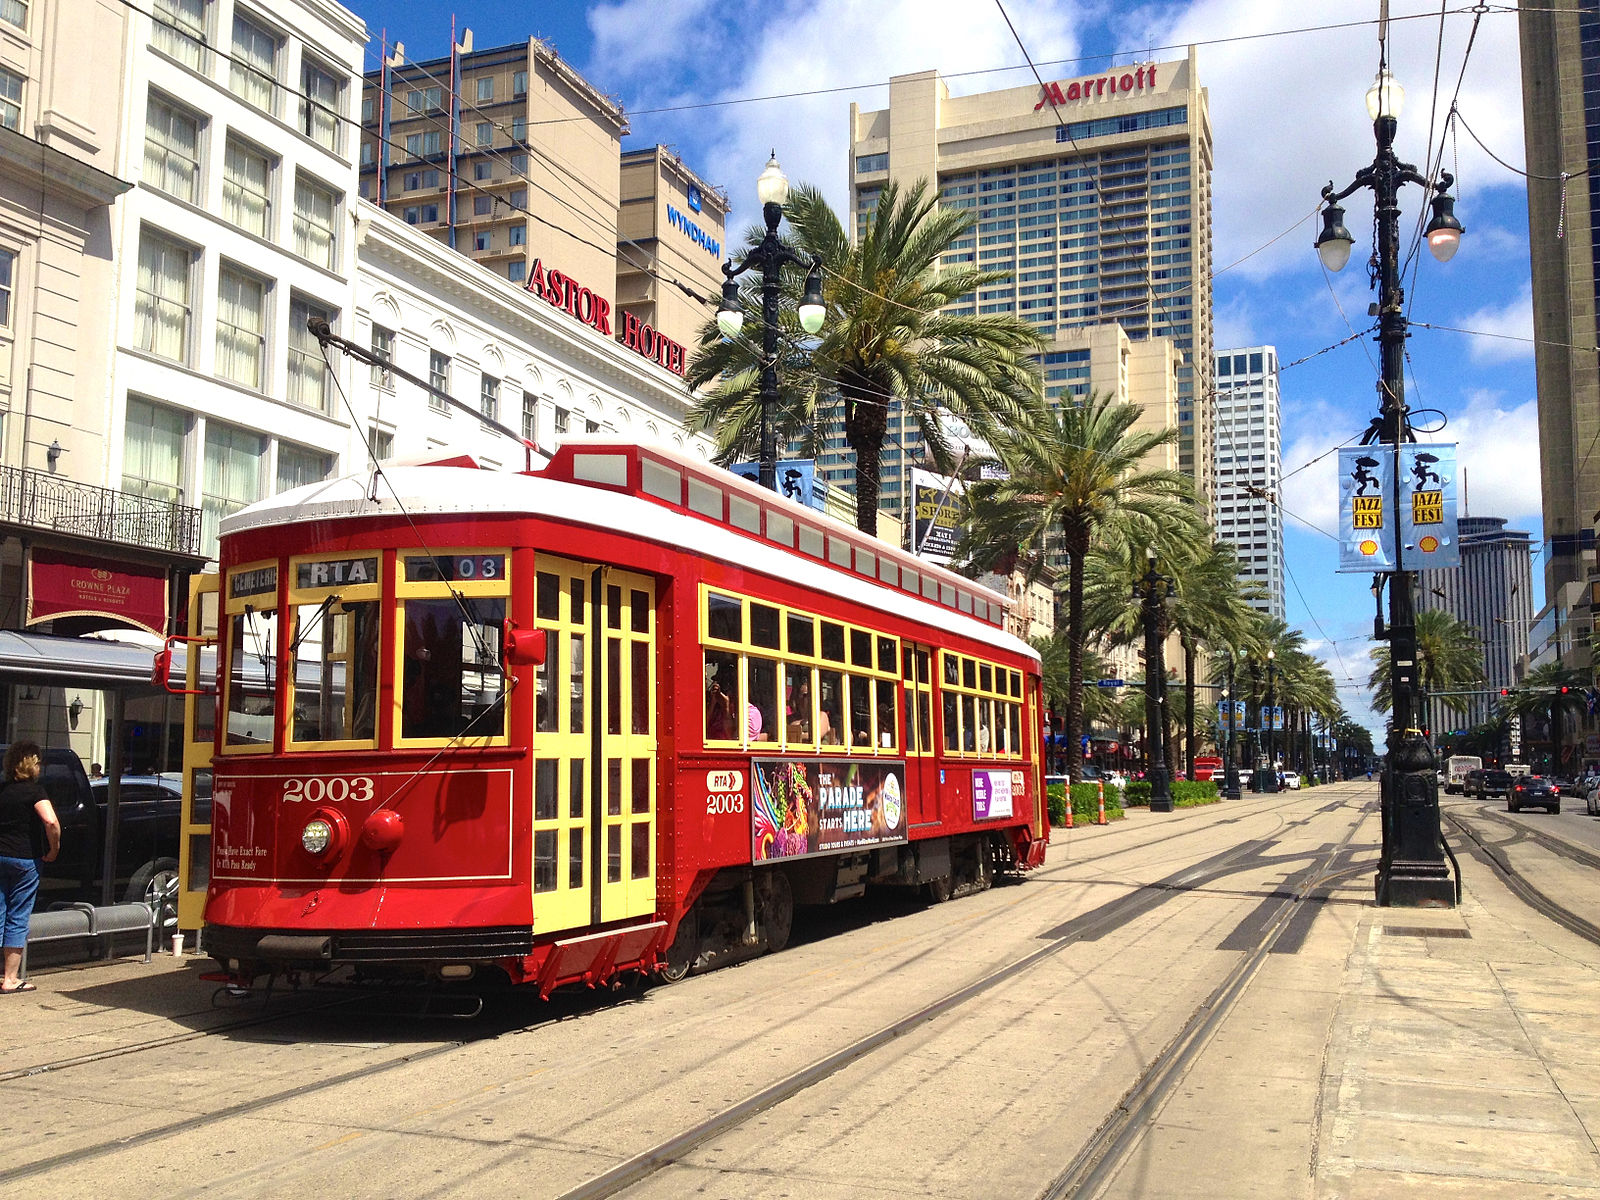 1600px-Canal_Streetcar_in_New_Orleans,_Louisiana,_USA.jpg